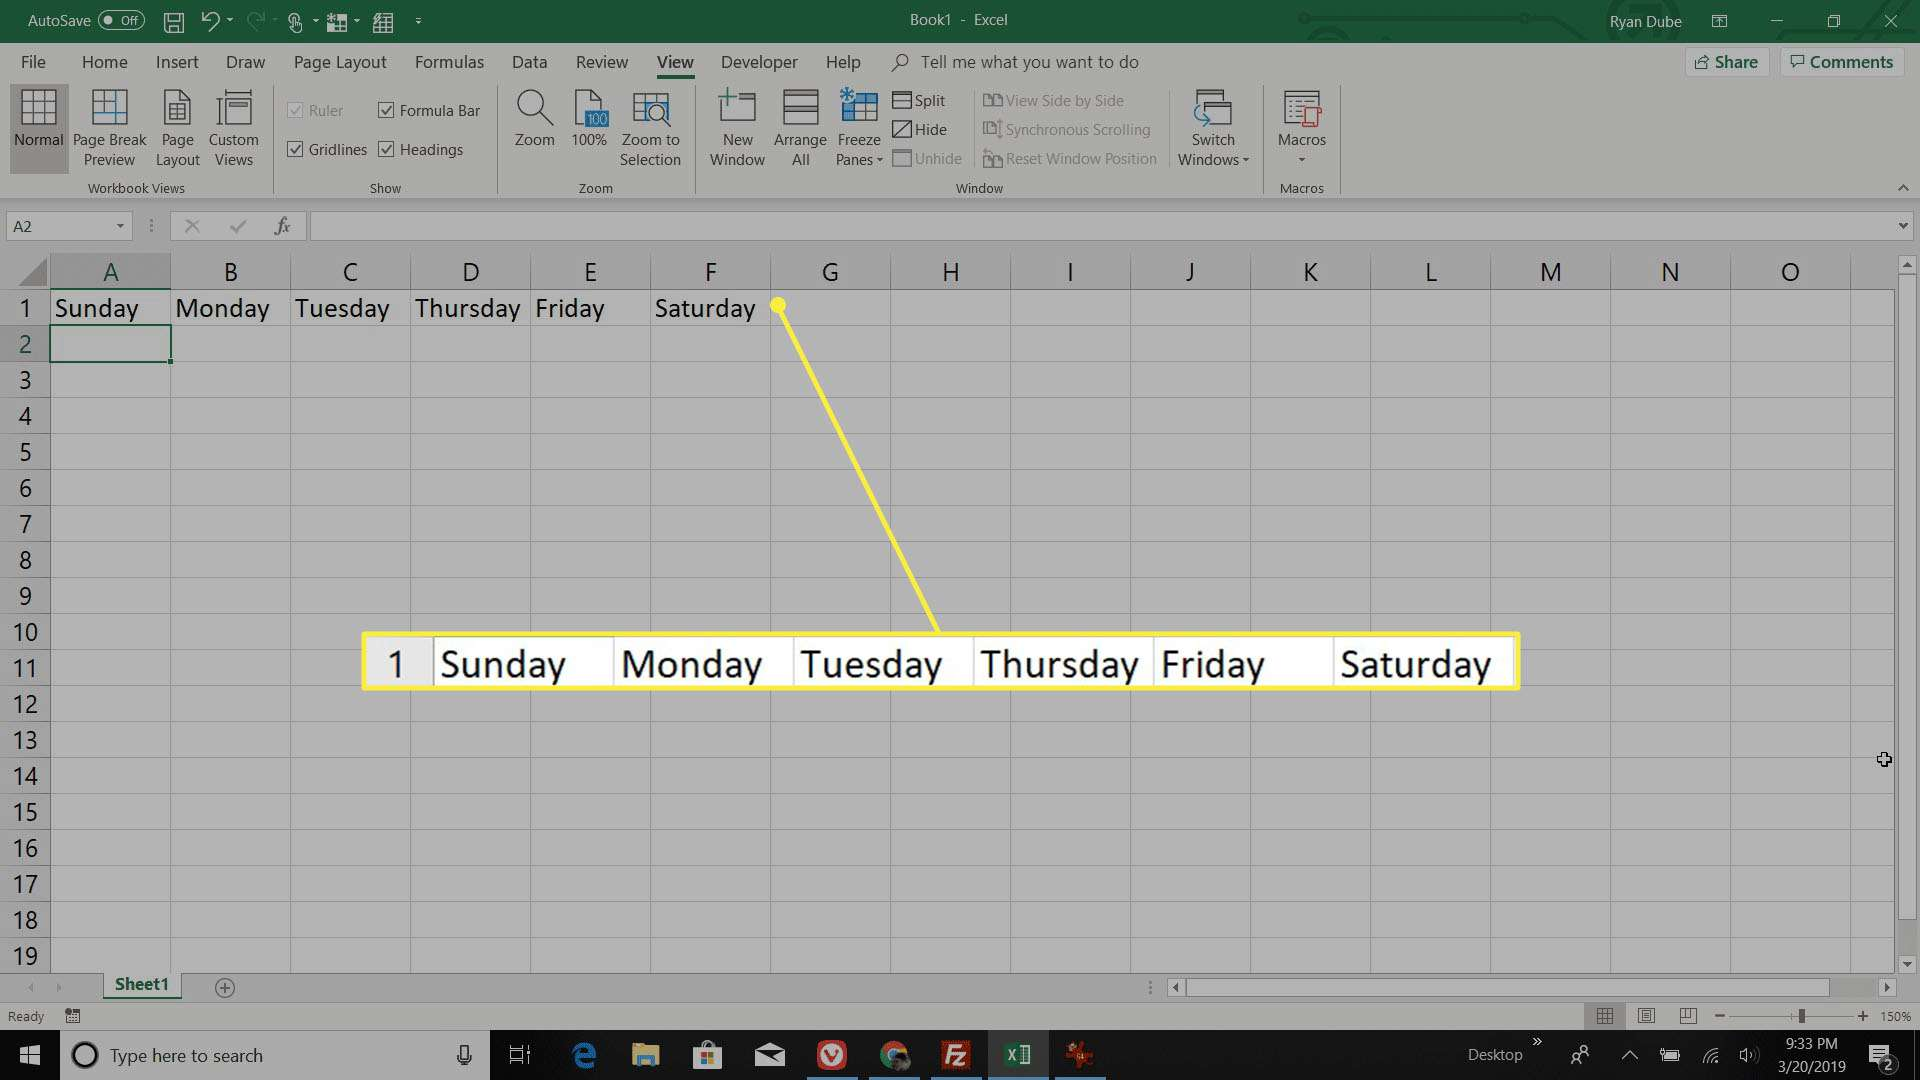 filling out days of the week in the Excel calendar